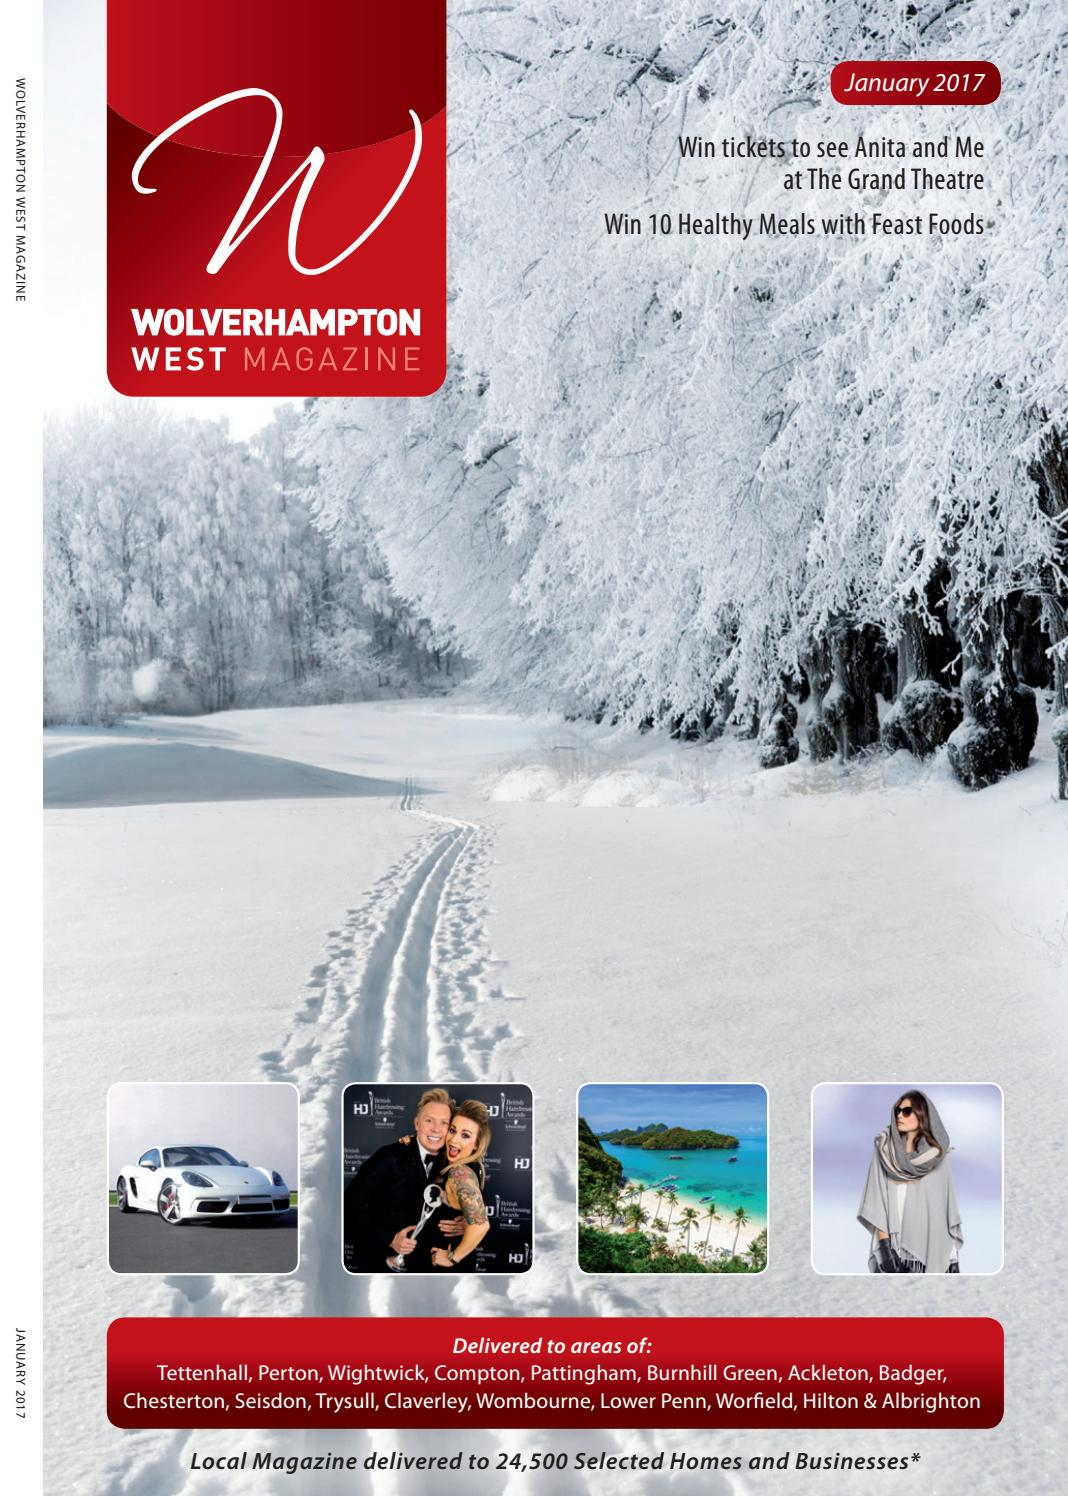 a1d290931 Woverhampton West Magazine - January 2017 by Jonathon - issuu